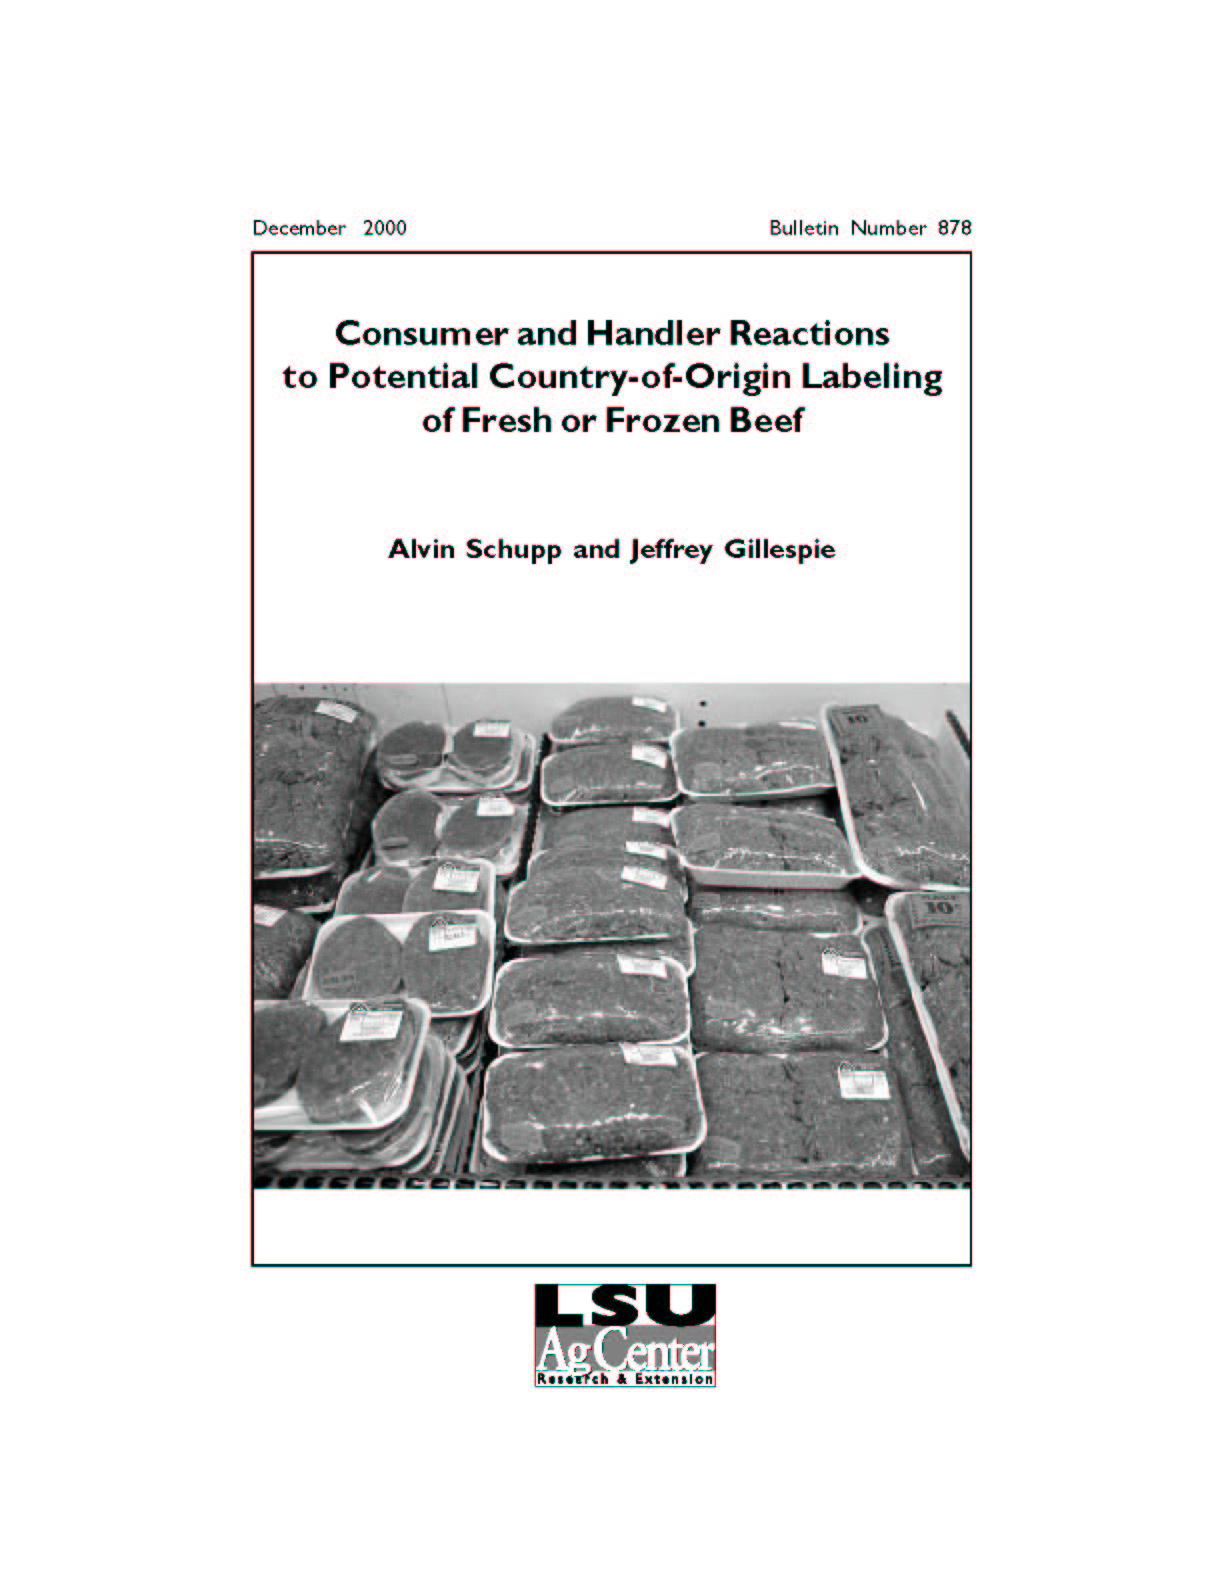 Consumer and Handler Reactions to Potential Country-of-Origin Labeling of Fresh or Frozen Beef (December 2000)